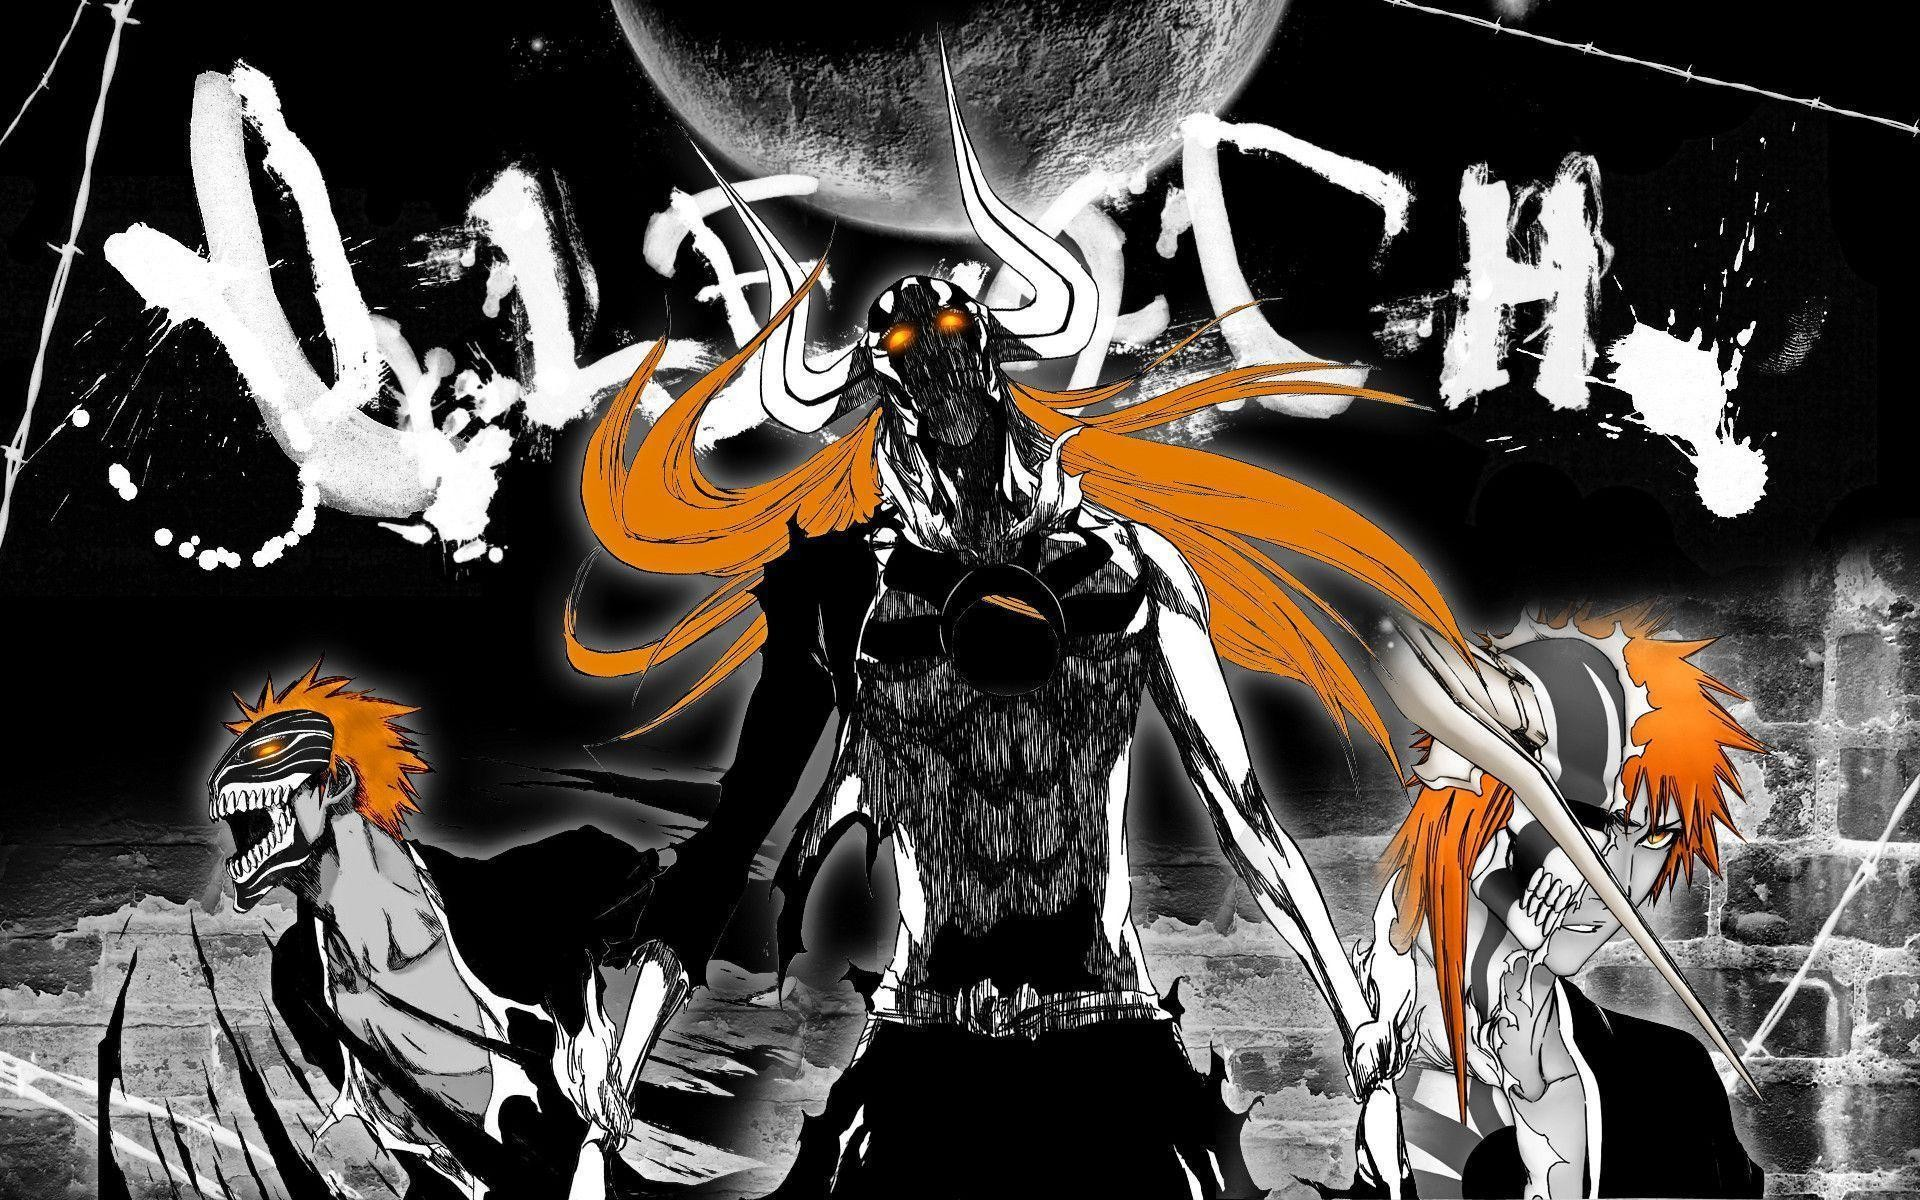 1920x1200 Bleach Wallpapers - Black Panther's Den Wallpaper (35138351) - Fanpop